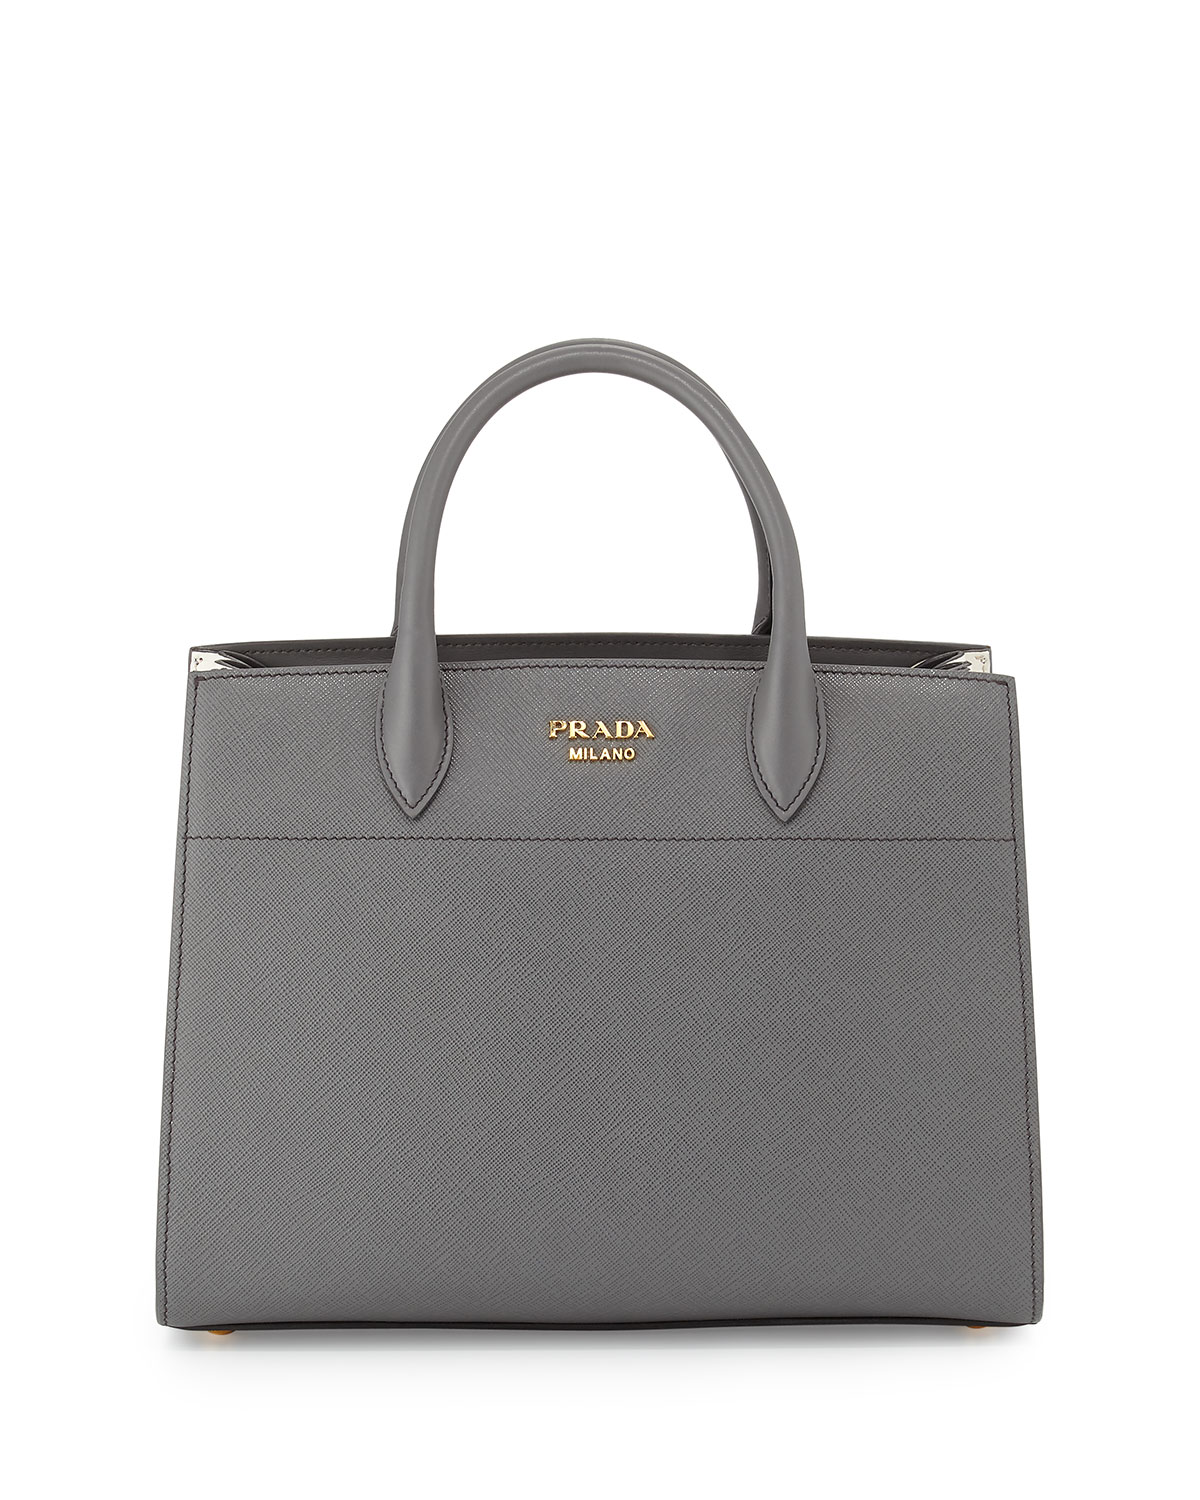 596c9919d550 Prada Bibliotheque Medium Saffiano Top-Handle Tote Bag